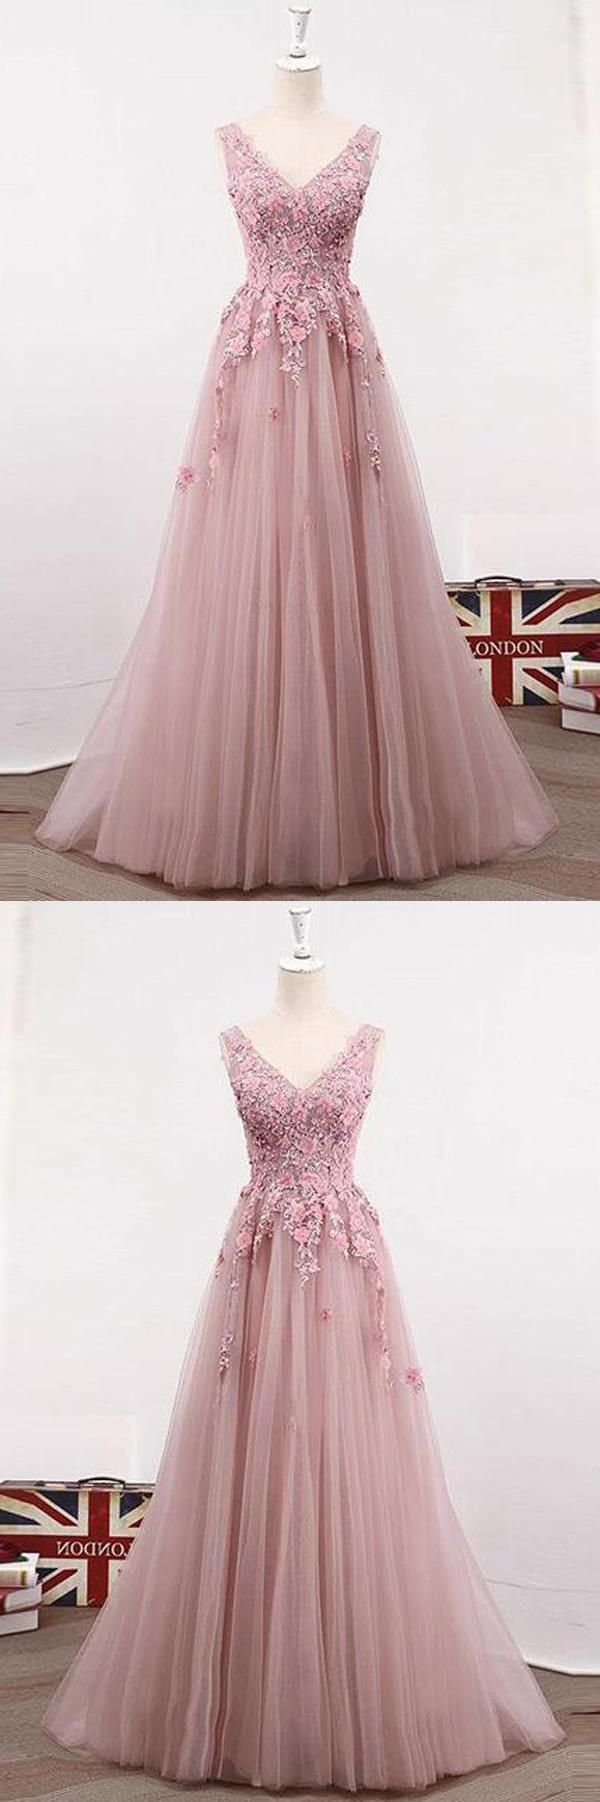 Custom Made Delightful Prom Dresses Lace, Pink Prom Dresses, Prom Dresses Long, Prom Dresses A-Line